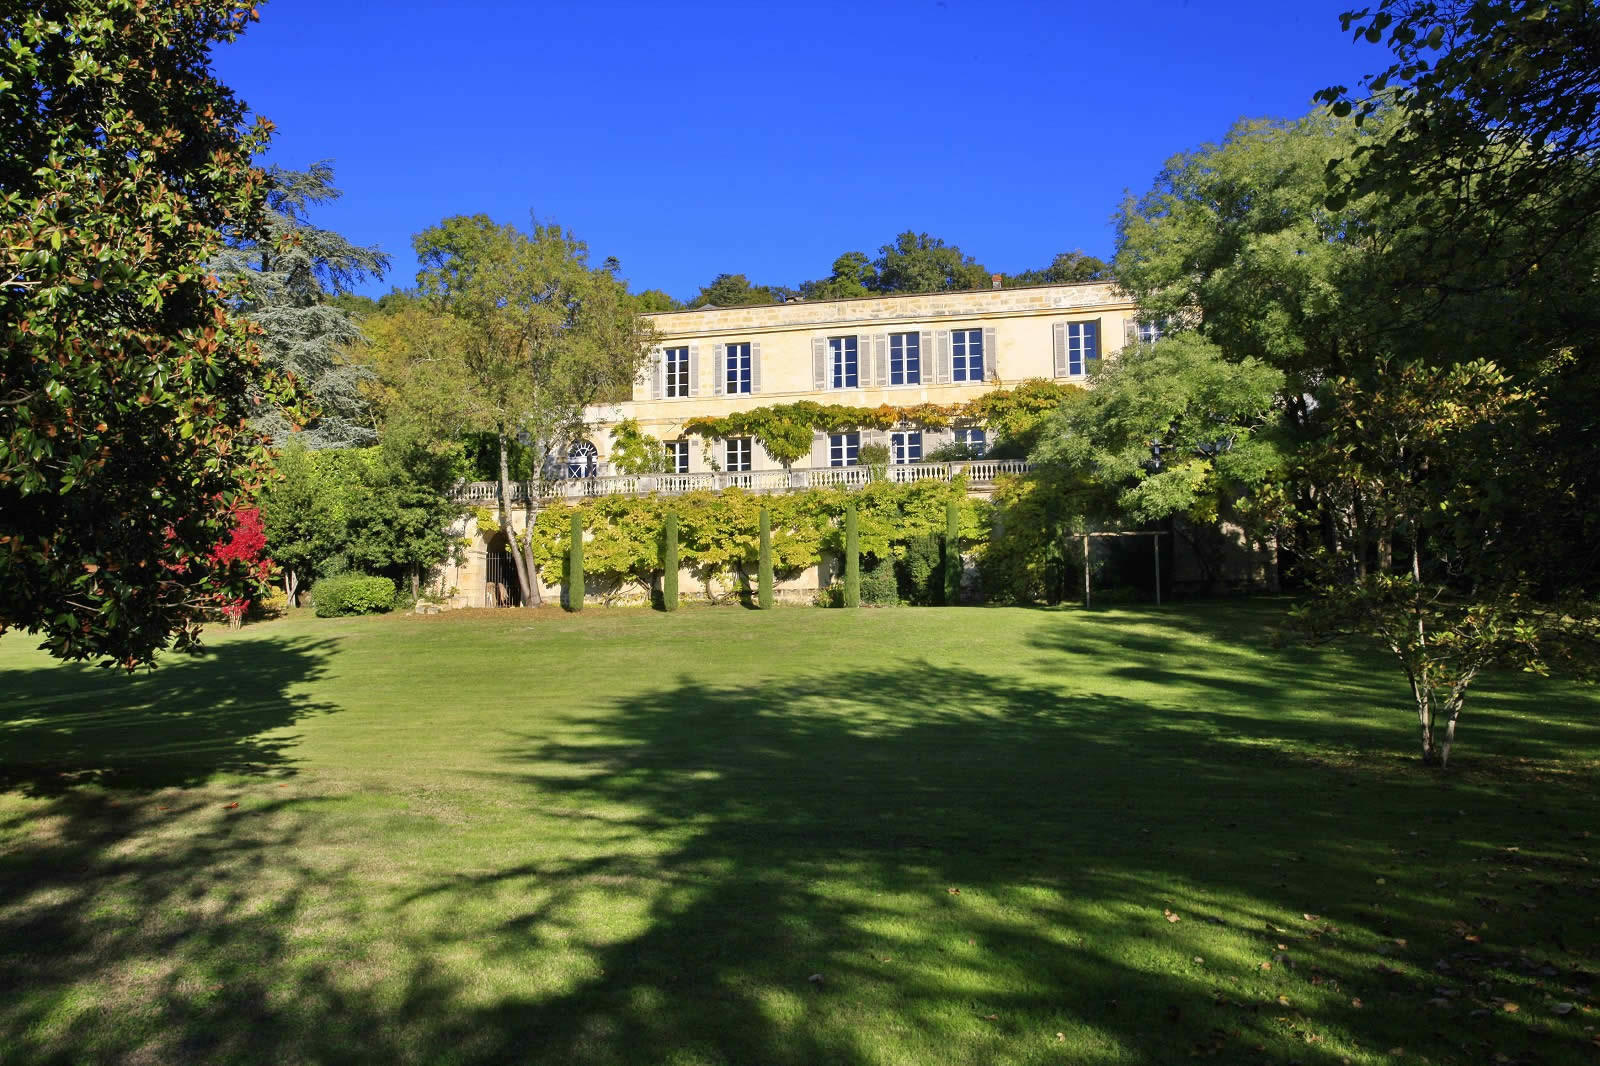 chateau-a-vendre-3-hectares-cheminee-2-caves-voutees